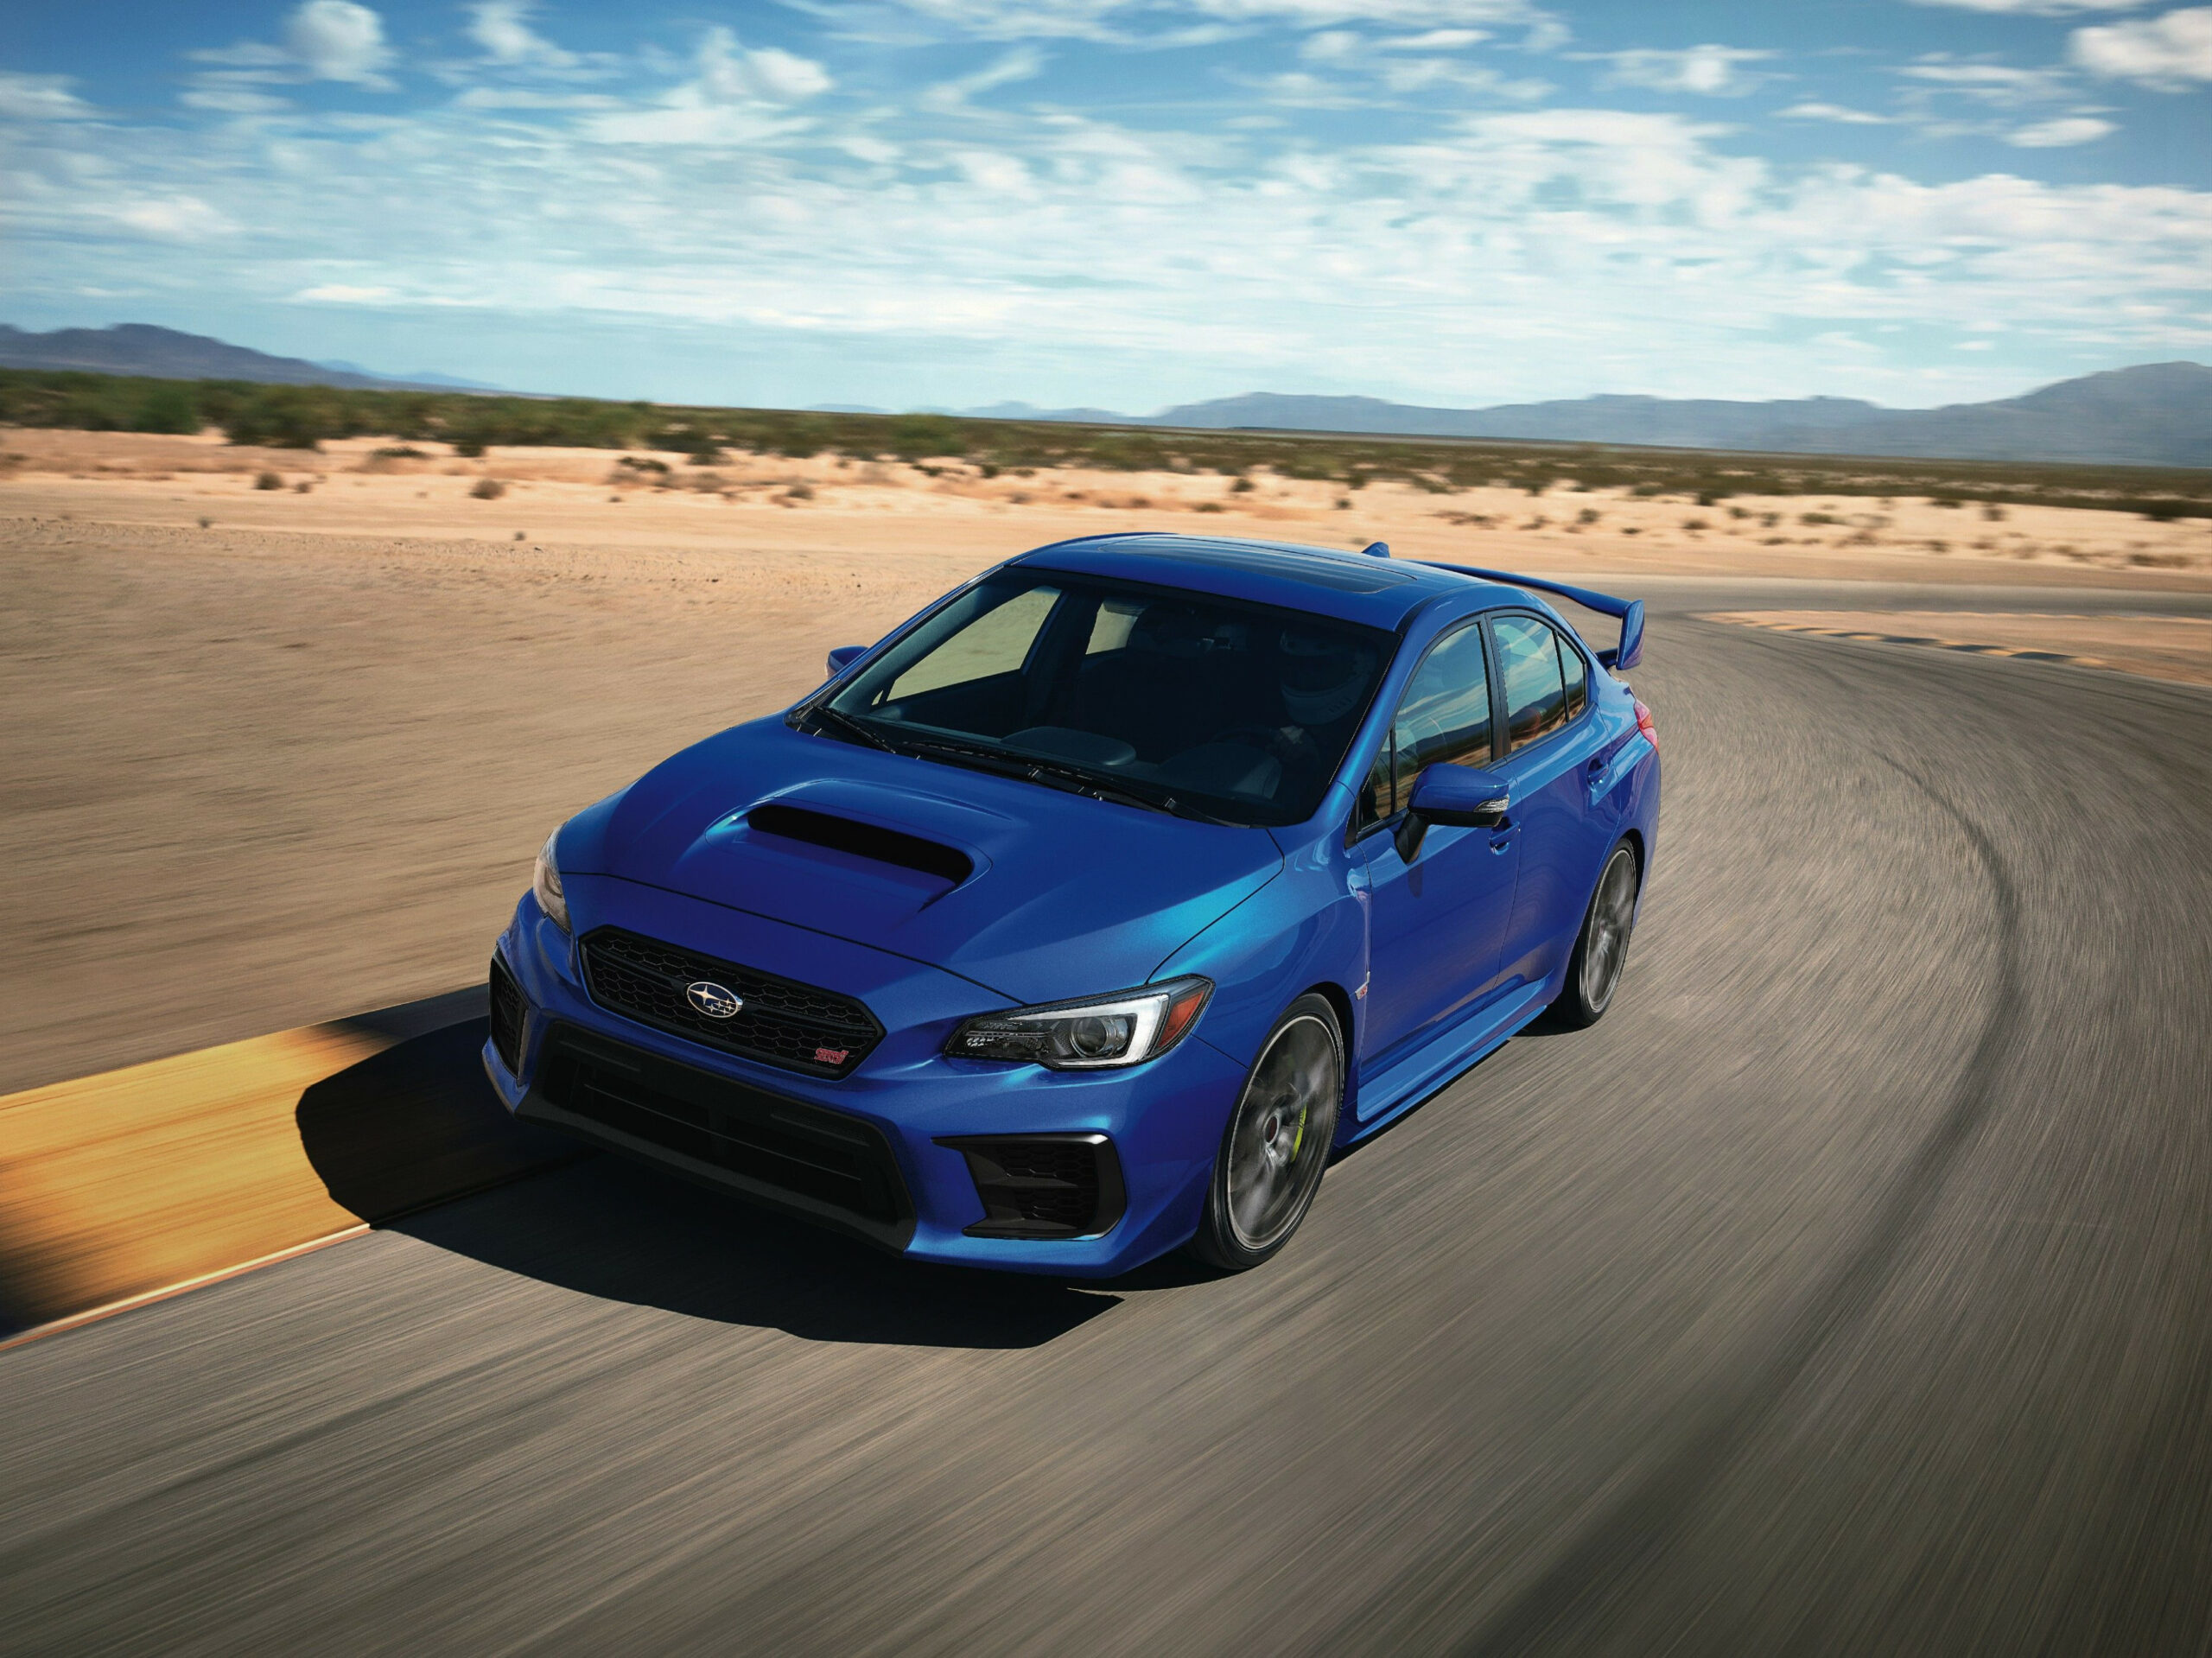 9 Subaru WRX STI Review, Pricing, and Specs